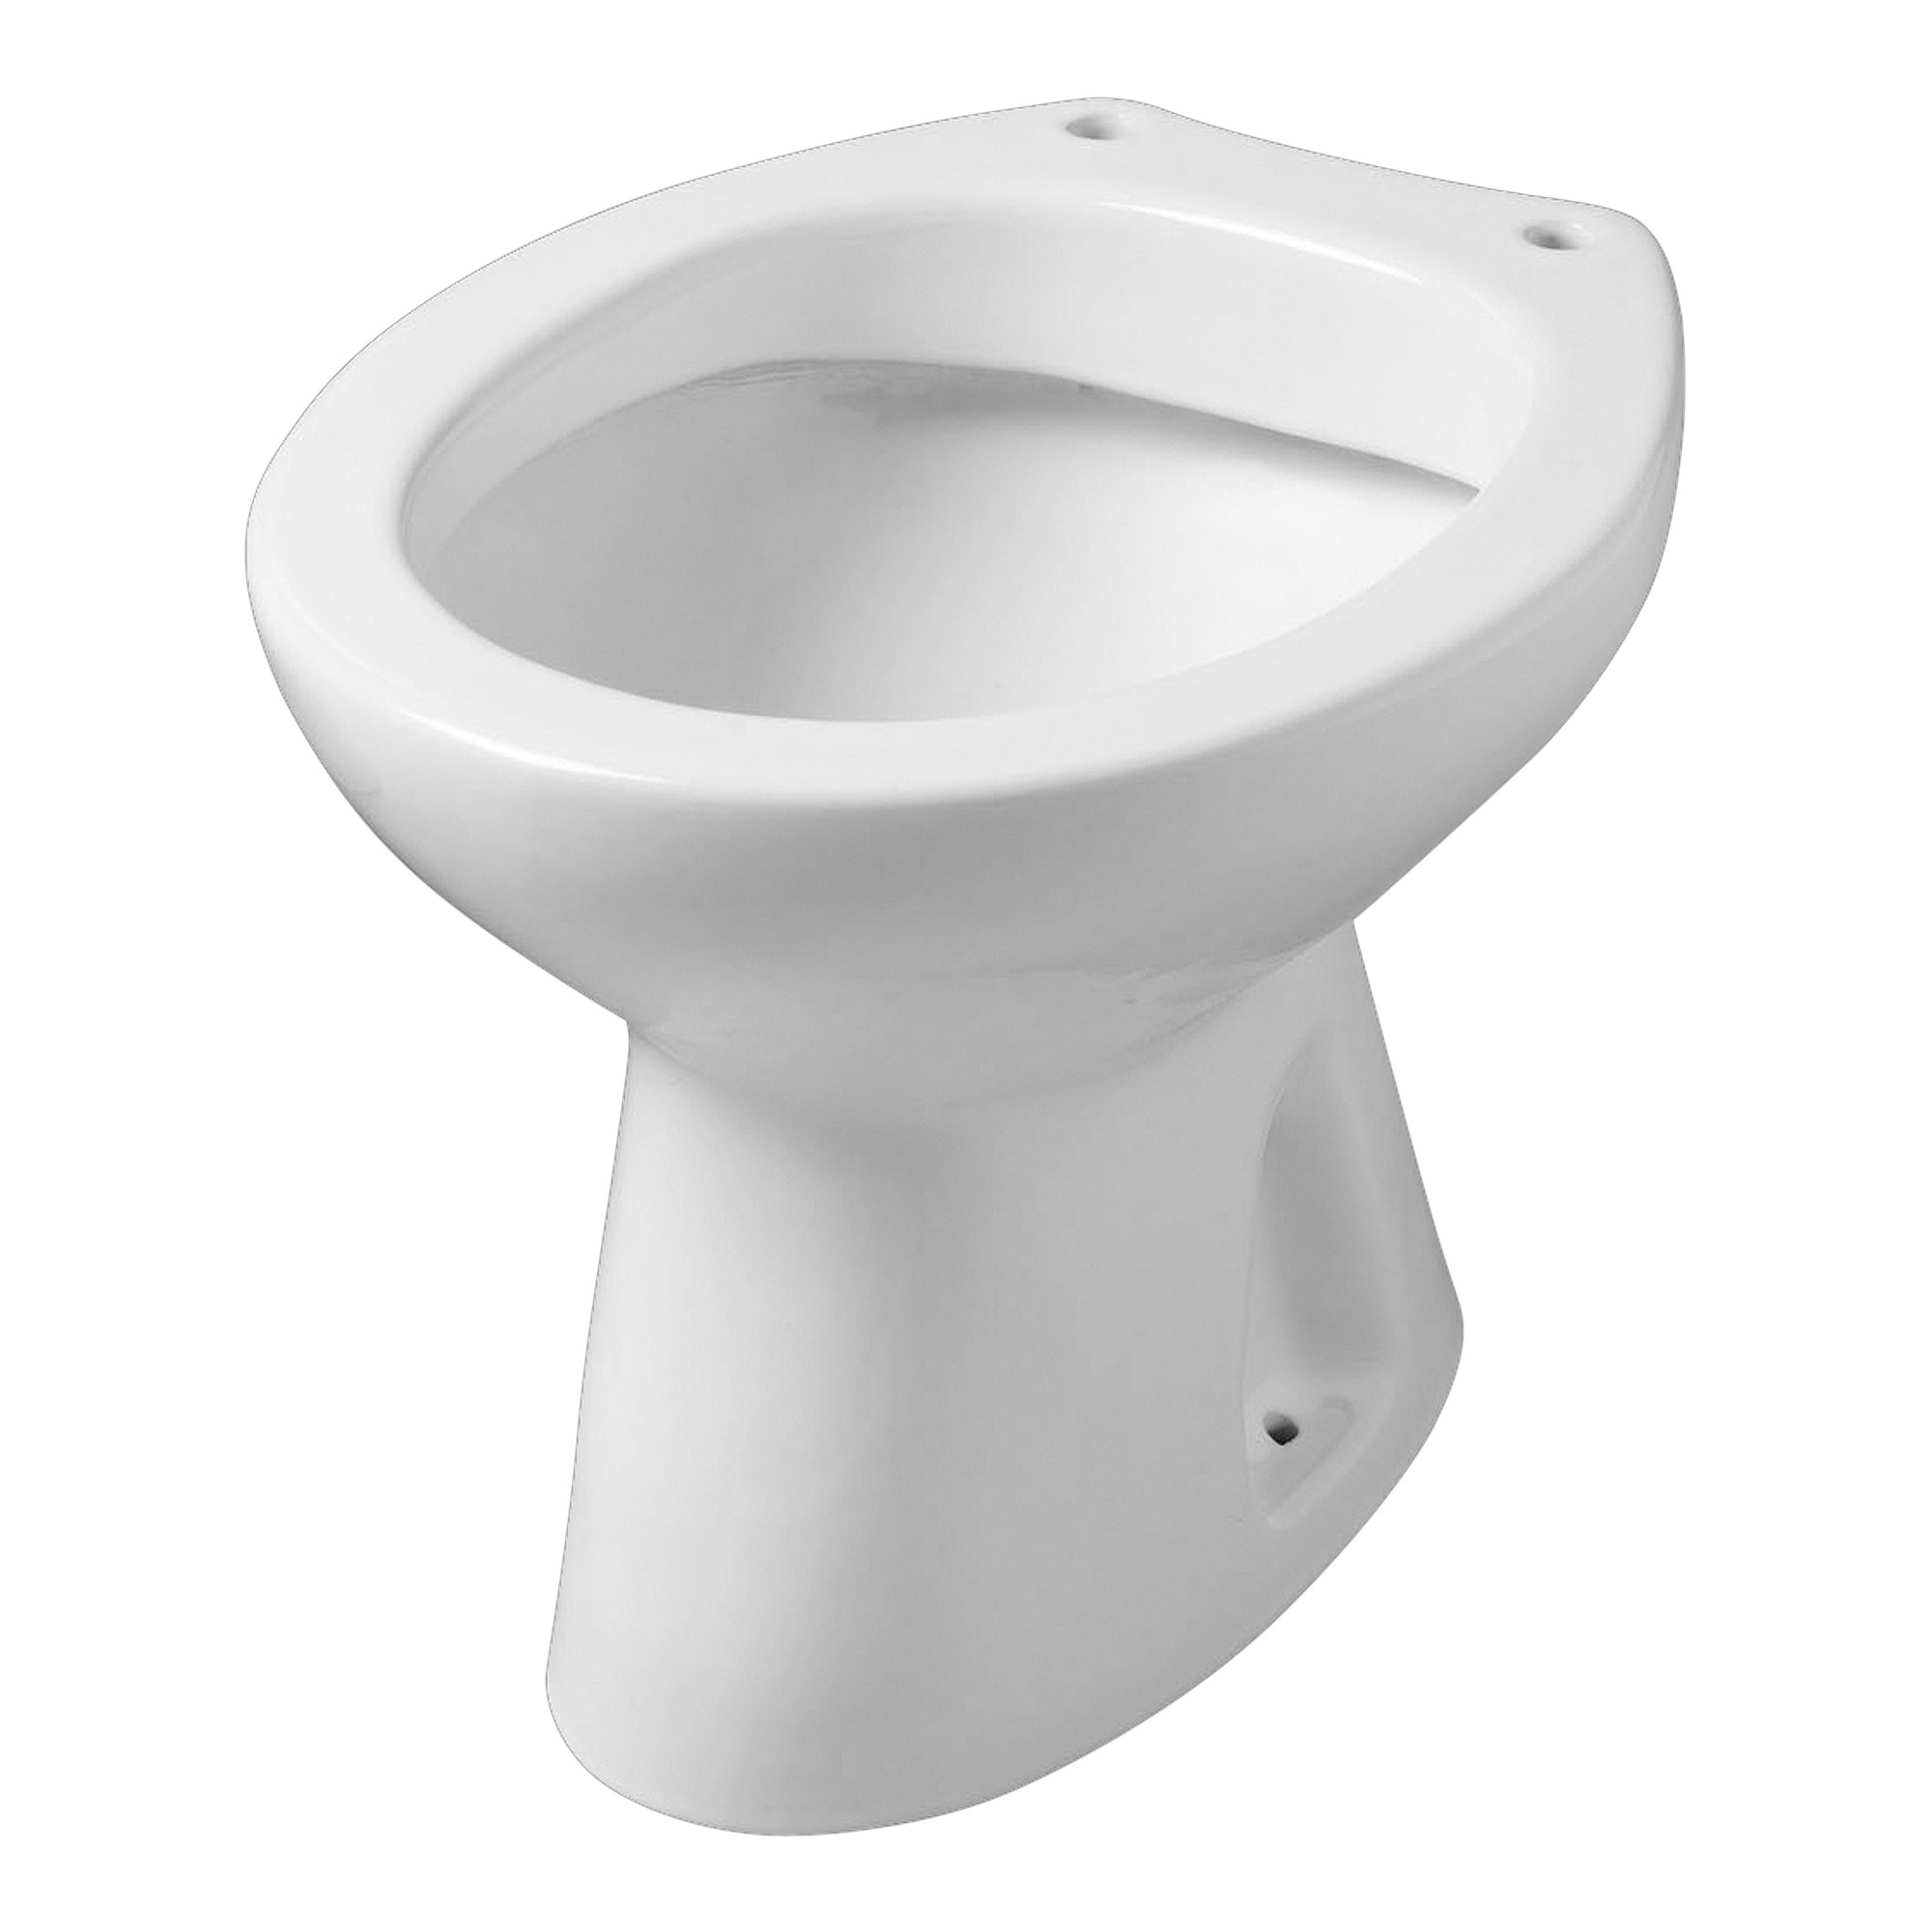 Comment d tartrer wc d tartrage cuvette toilettes - Detartrage wc tres entartre ...